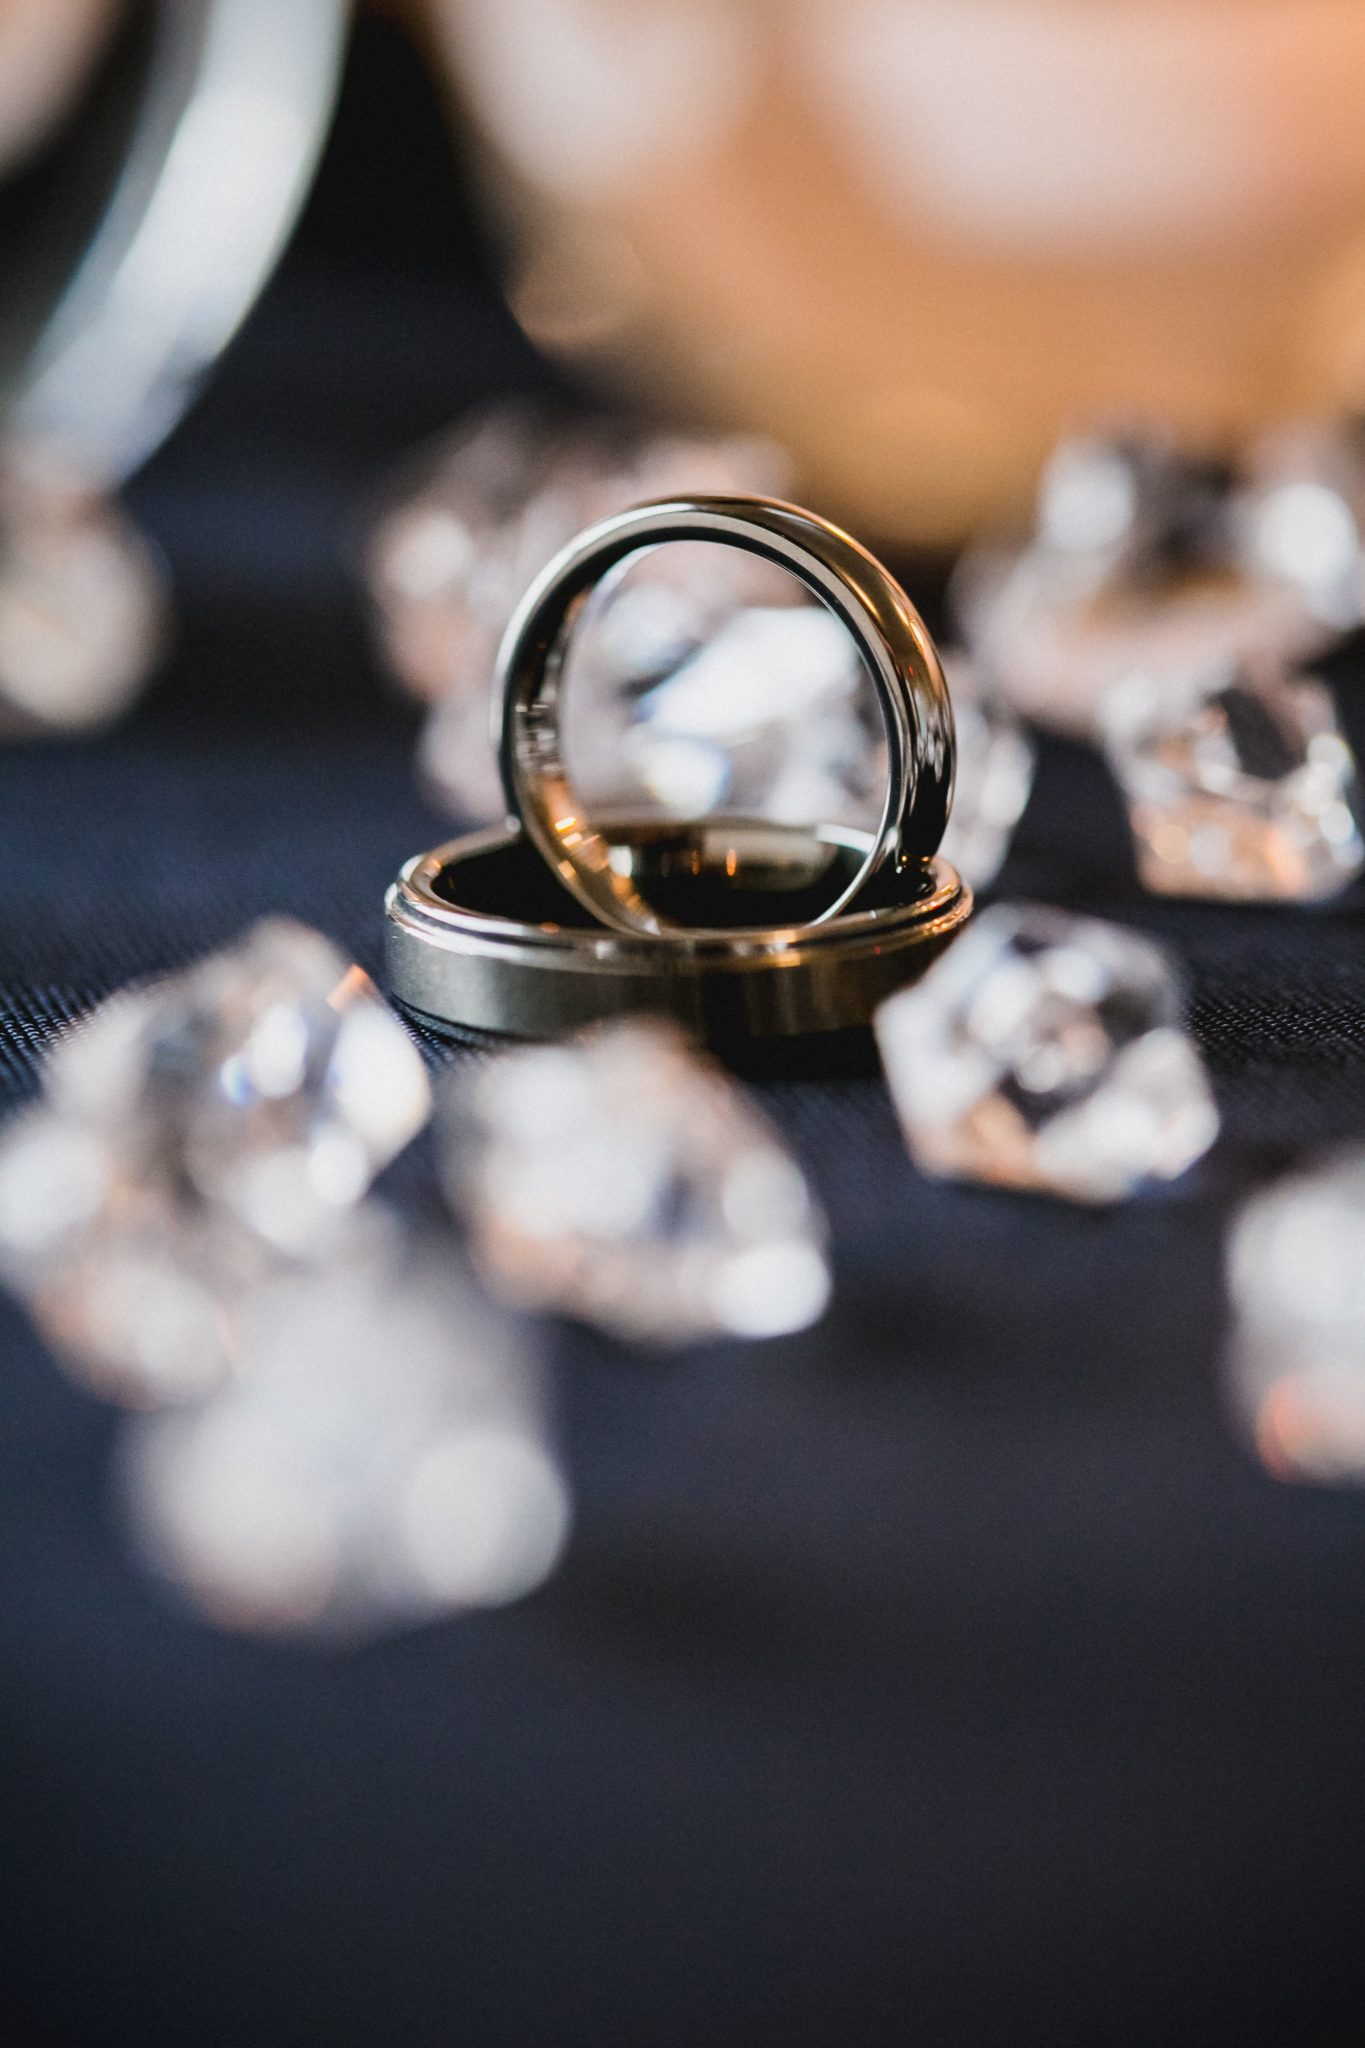 Artistic shot of wedding rings surrounded by gems